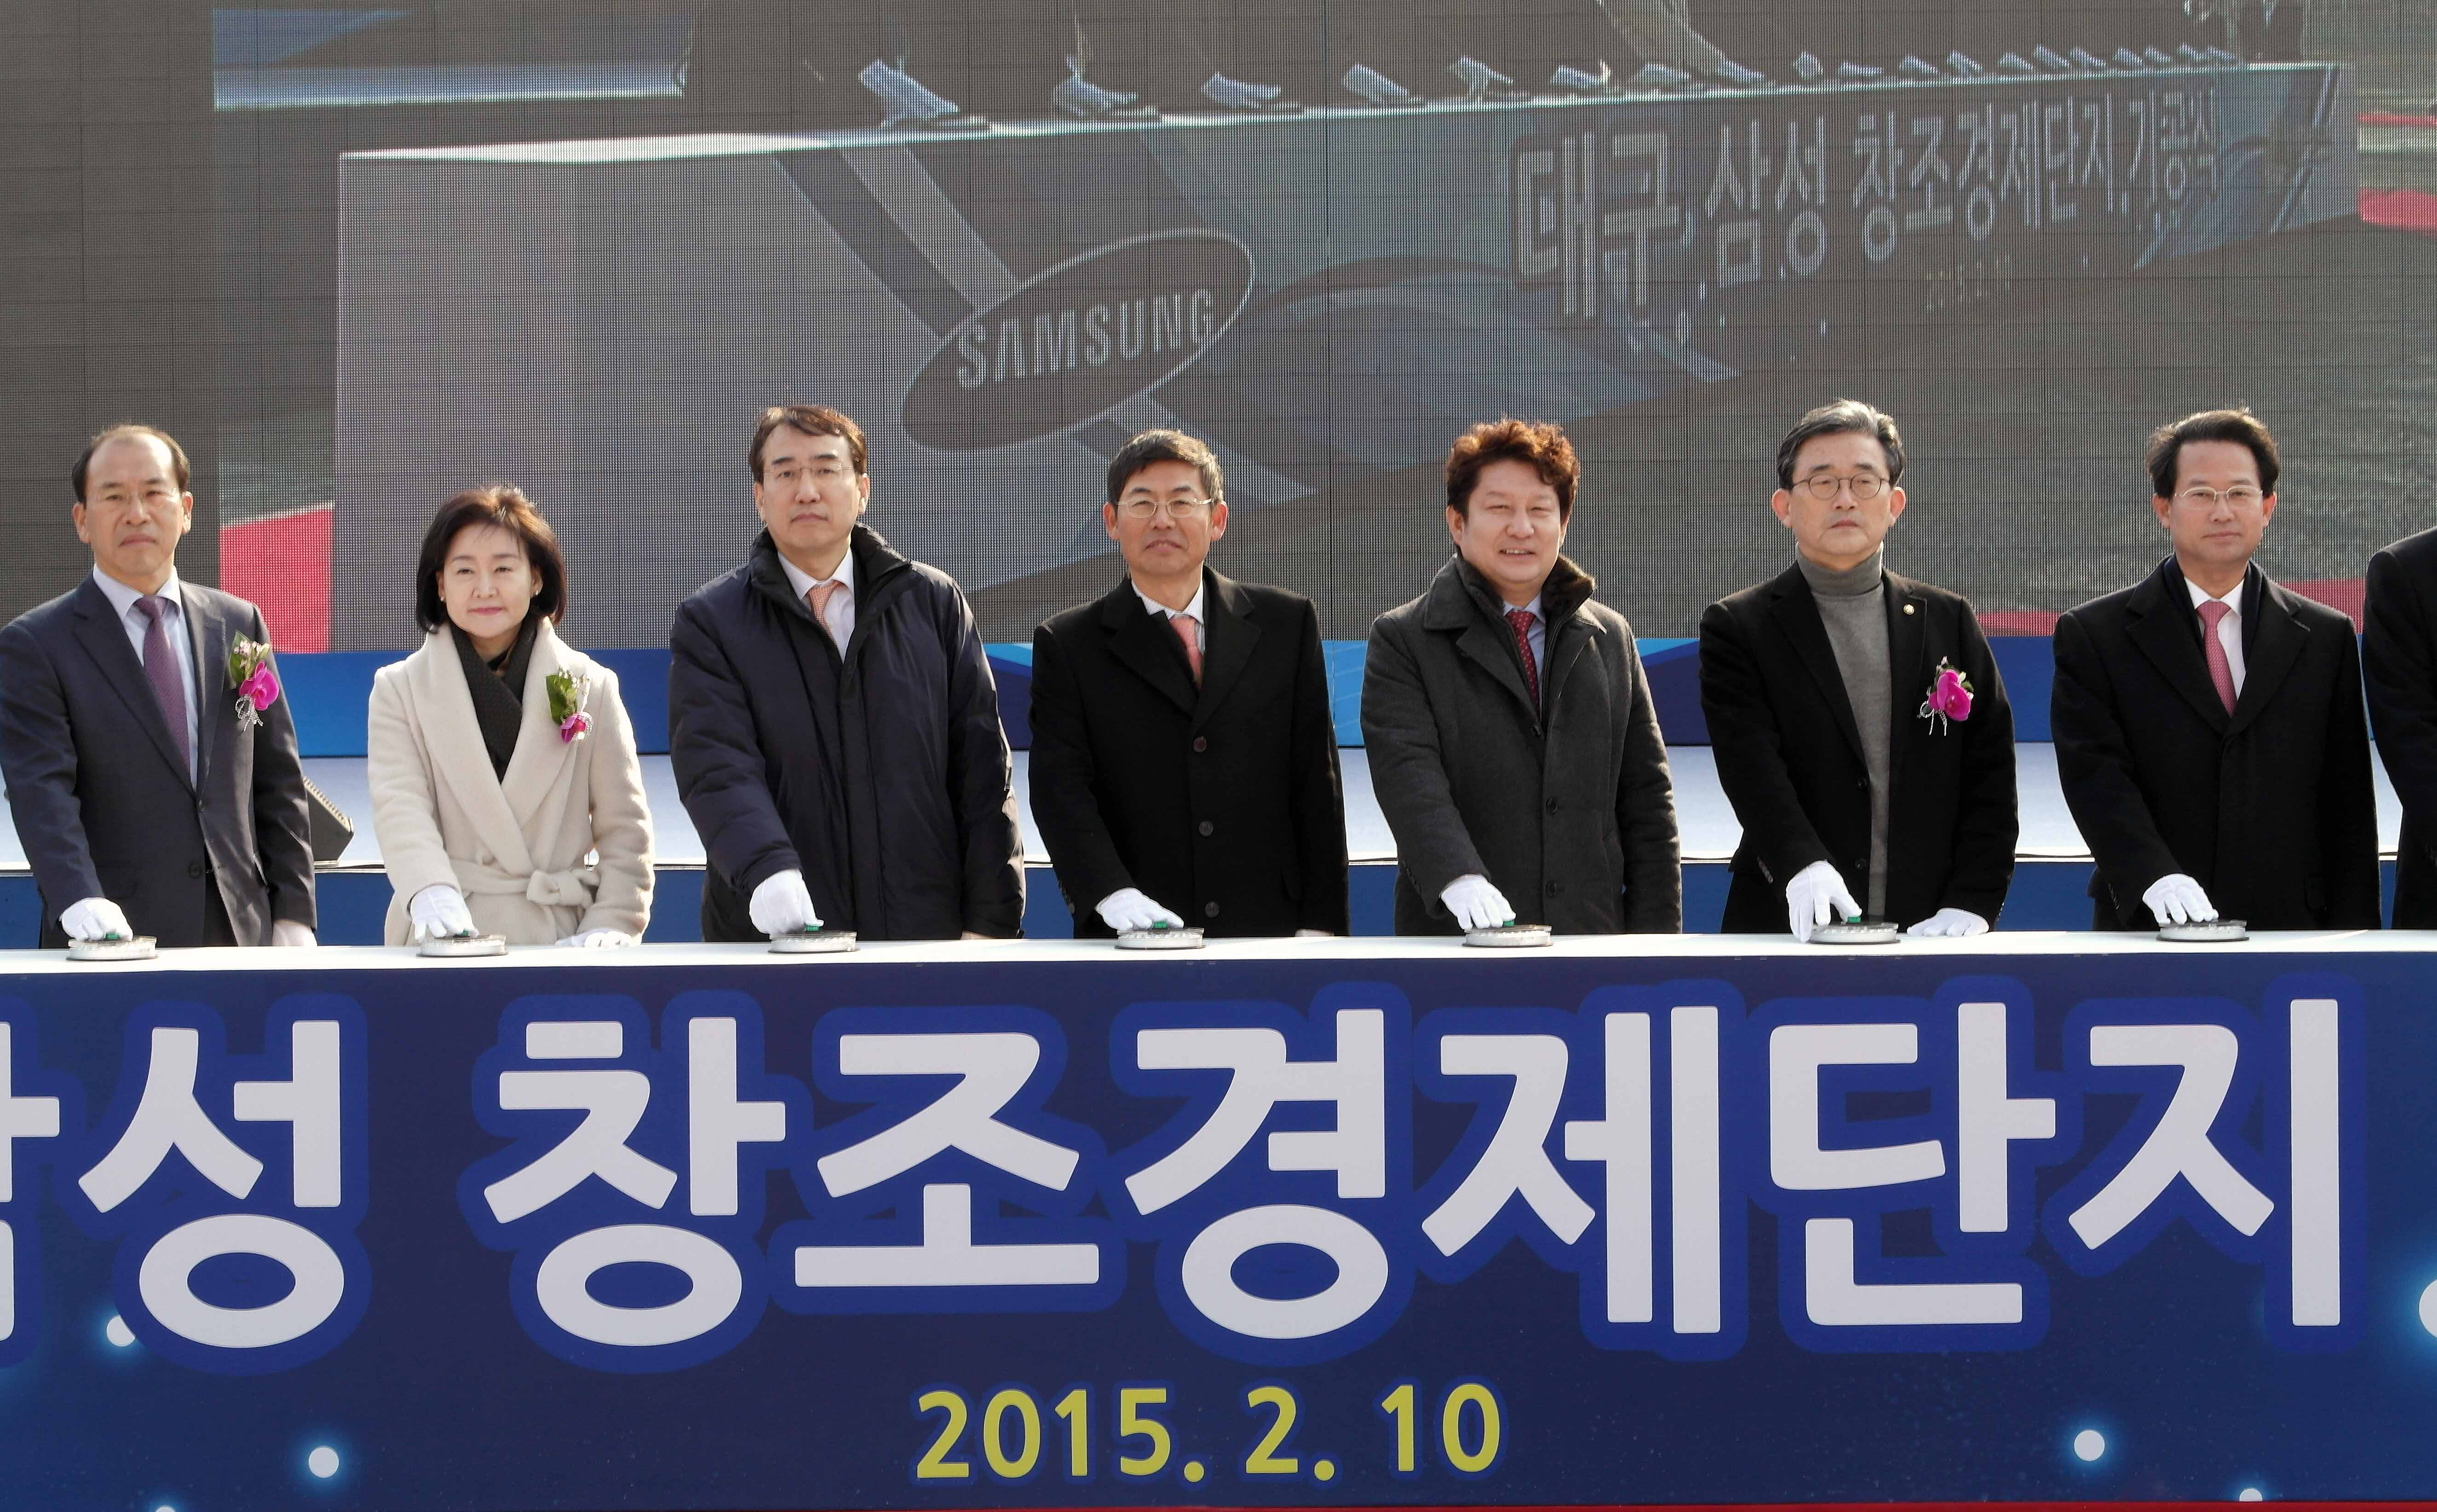 The Daegu City government and Samsung Launched a groundbreaking ceremony for Daegu-Samsung Creative Economy Complex in February, 2015.